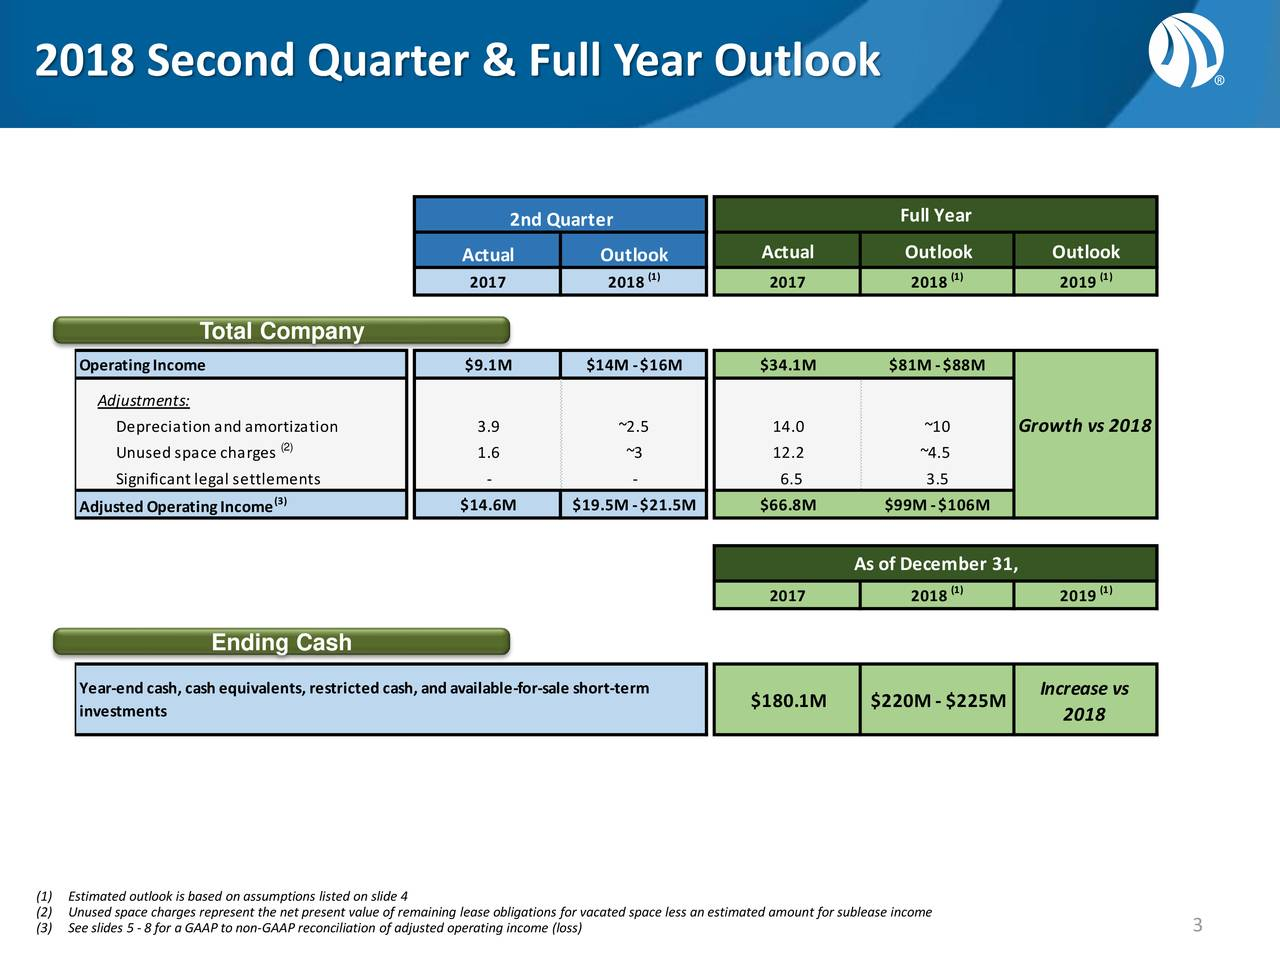 2nd Quarter Full Year Actual Outlook Outlook Actual Outlook 2017 2018 (1) 2017 2018 (1) 2019 (1) Total Company OperatingIncome $9.1M $14M -$16M $34.1M $81M -$88M Adjustments: Depreciation and amortization 3.9 ~2.5 14.0 ~10 Growth vs 2018 Unused space charges (2) 1.6 ~3 12.2 ~4.5 Significant legal settlements - - 6.5 3.5 AdjustedOperatingIncome (3) $14.6M $19.5M -$21.5M $66.8M $99M -$106M As of December 31, (1) (1) 2017 2018 2019 Ending Cash Year-endcash, cashequivalents, restrictedcash, andavailable-for-sale short-term Increase vs $180.1M $220M - $225M investments 2018 (1) Estimated outlook is based on assumptions listed on slide 4 (2) Unused space charges represent the net present value of remaining lease obligations for vacated space less an estimated amount for sublease income (3) See slides 5 - 8 for a GAAPto non-GAAP reconciliation of adjusted operating income (loss) 3